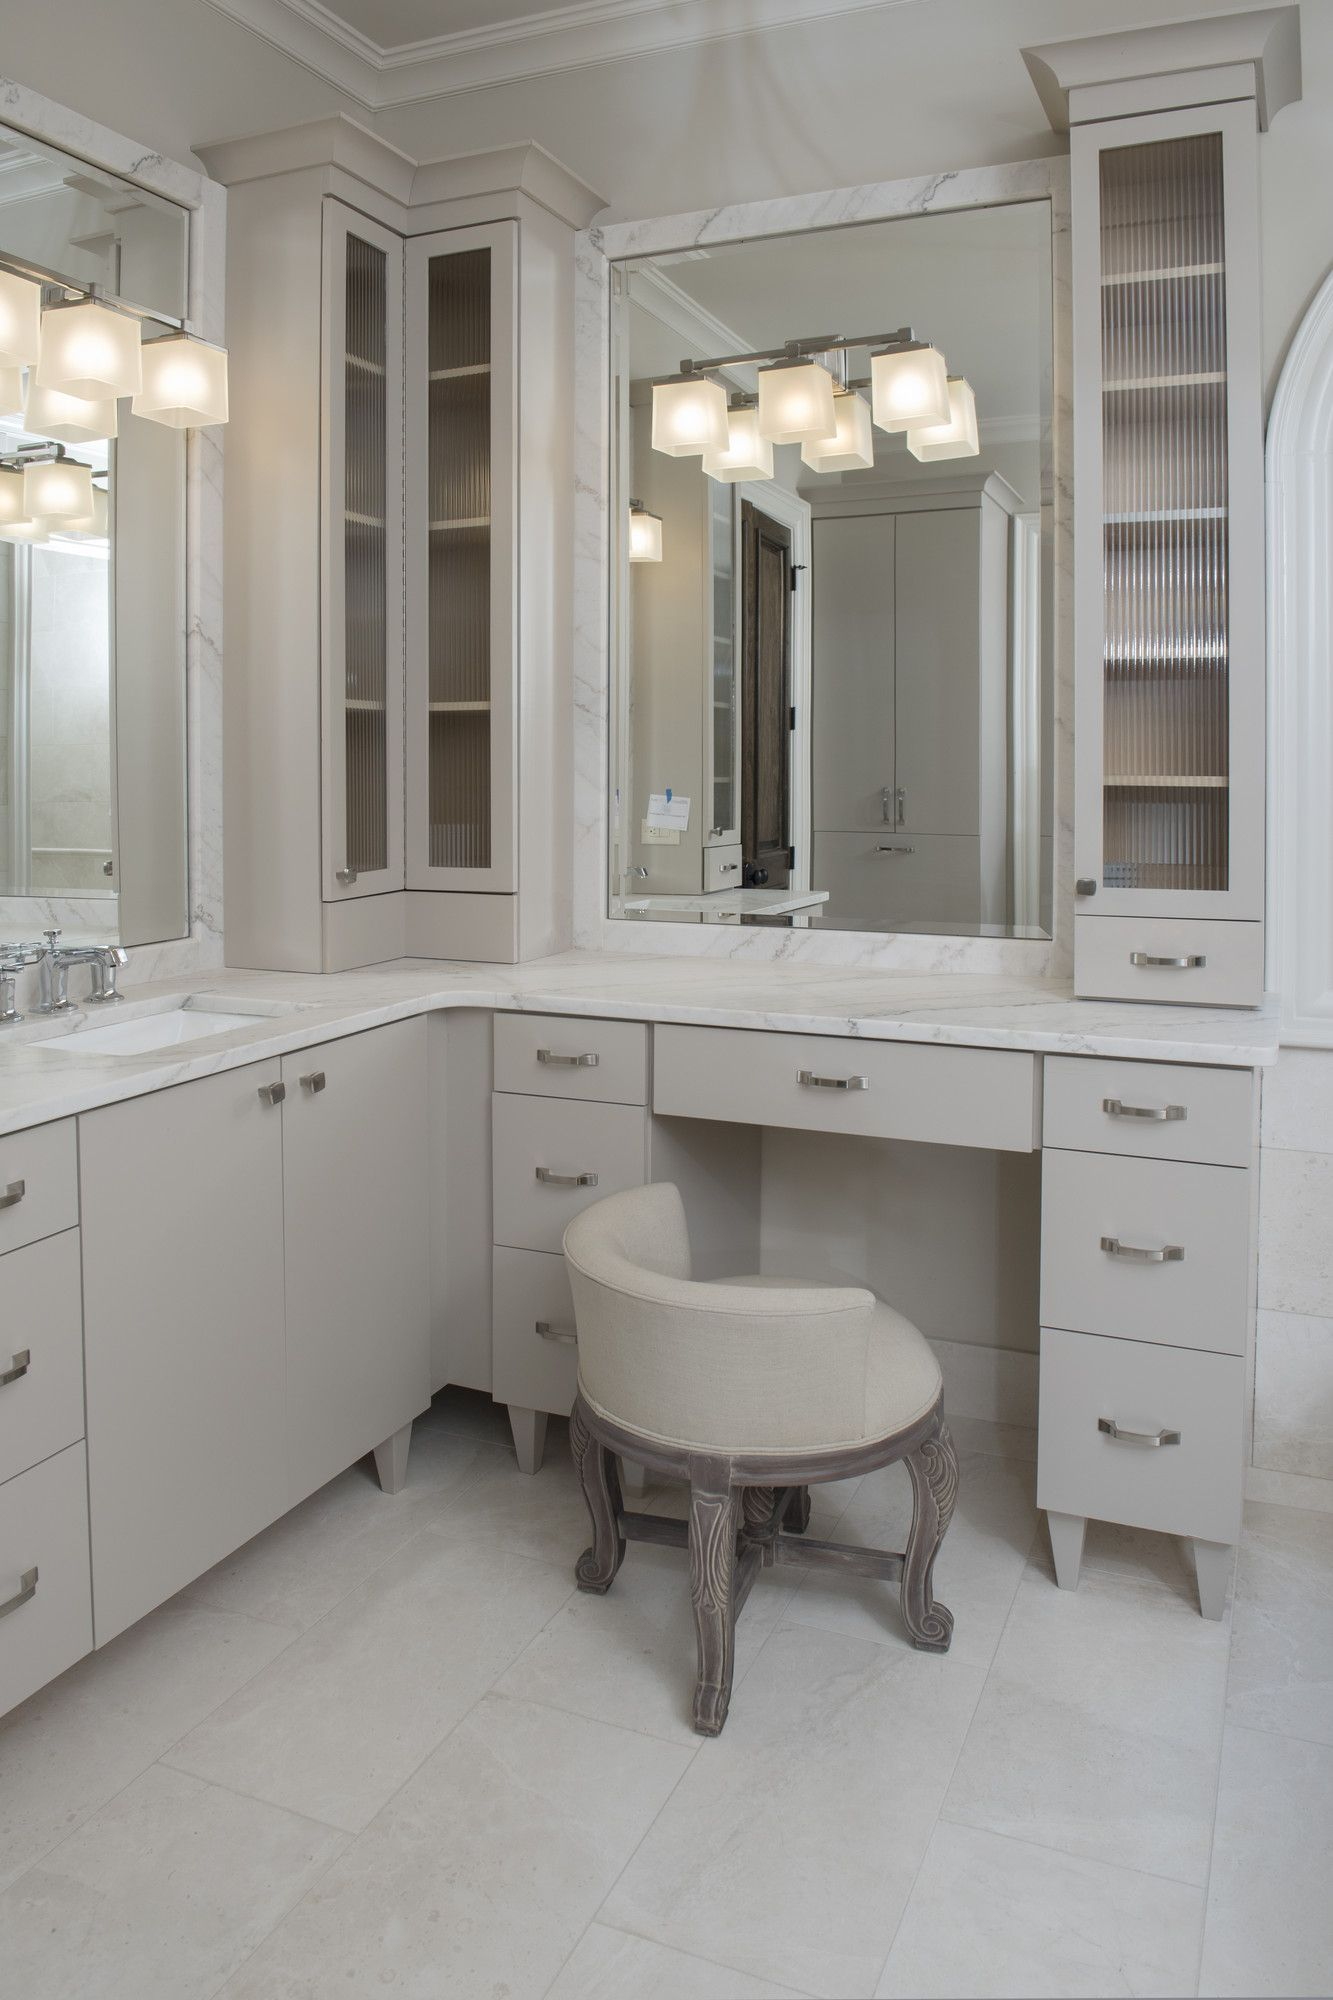 I Like The Material Around The Mirrors The Same As The Counter Top